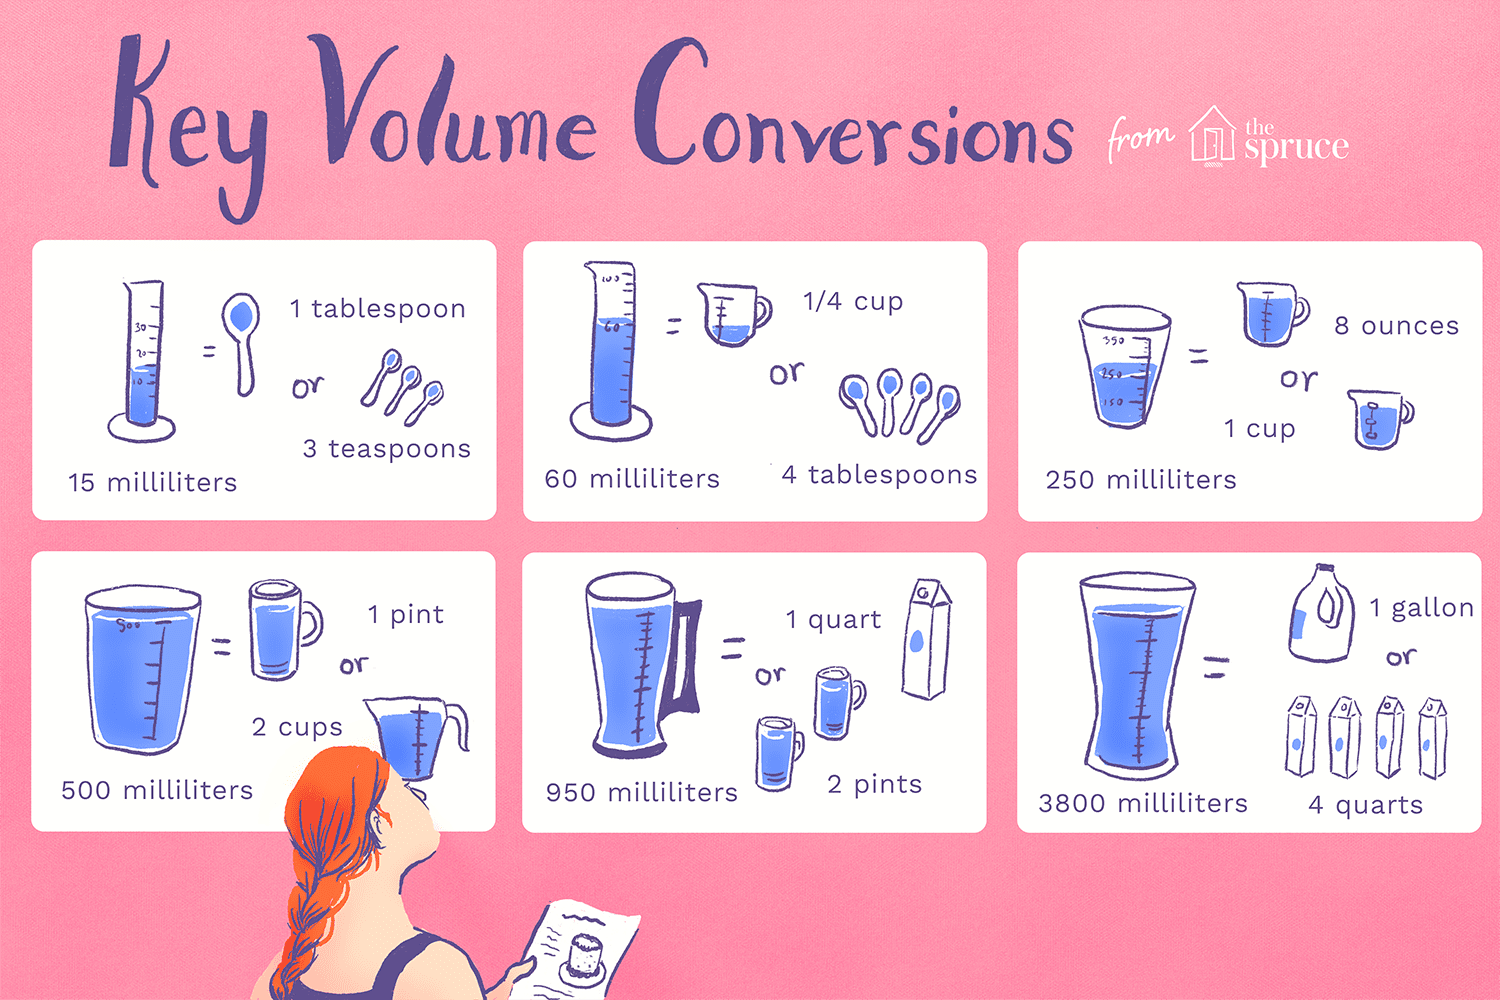 Volume Conversion Tablespoons To Cups